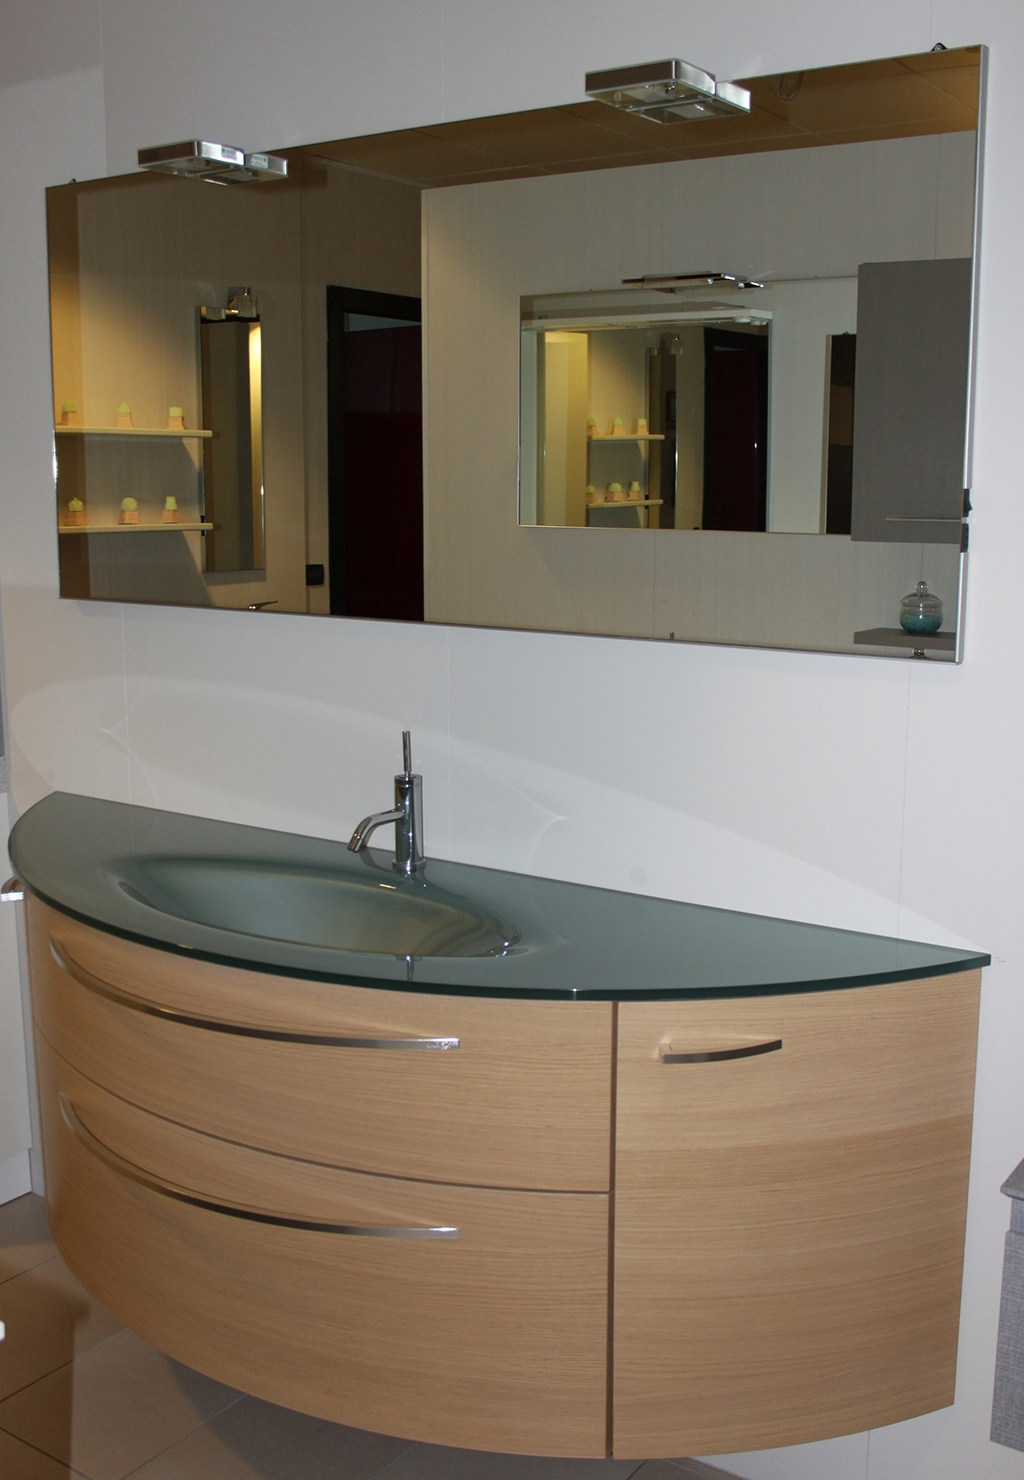 Best Punto Tre Arredo Bagno Photos - harrop.us - harrop.us